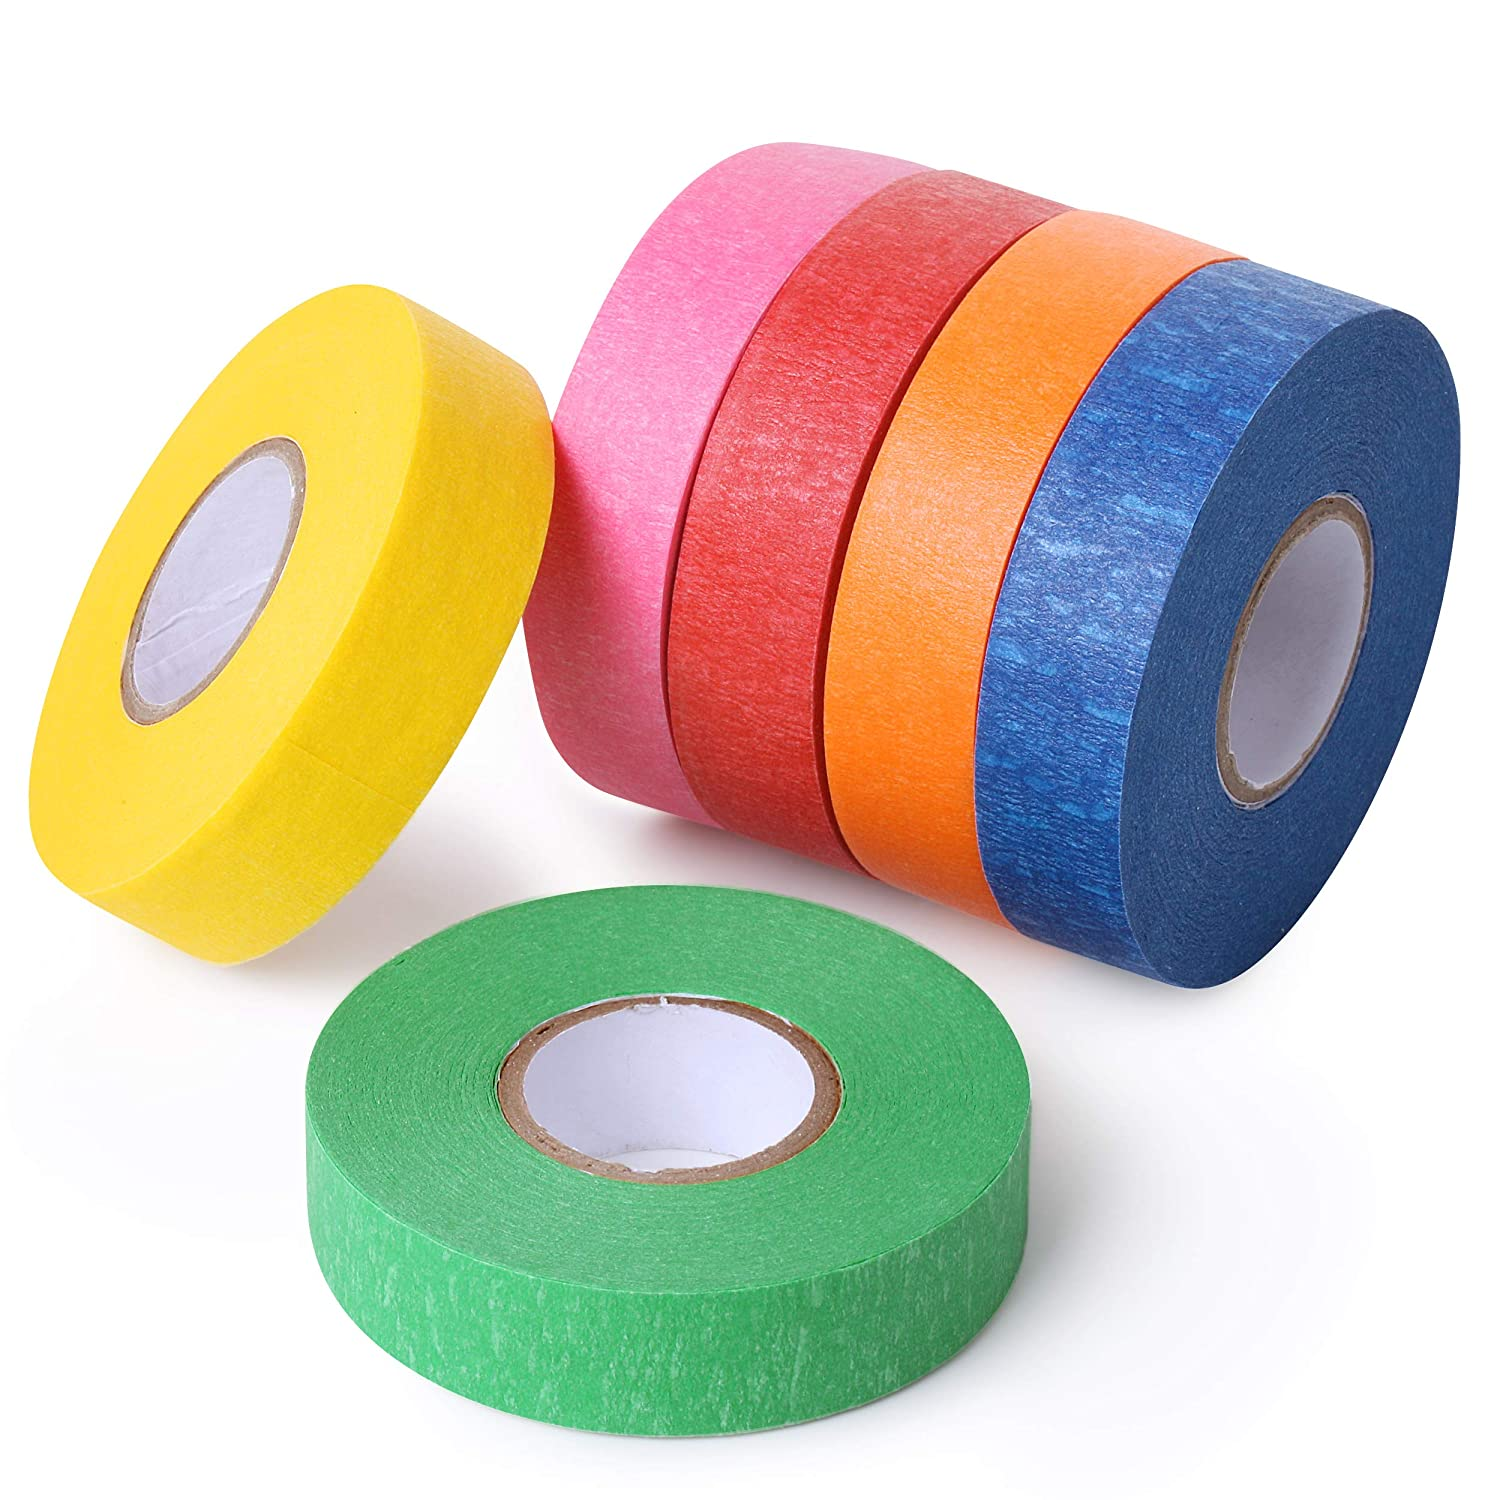 Mr. Pen- Colored Masking Tape, Colored Painters Tape for Arts and Crafts, 6 Pack, Drafting Tape, Craft Tape, Labeling Tape, Paper Tape, Masking Tape, Colored Tape, Colorful Tape, Artist Tape, Art Tape